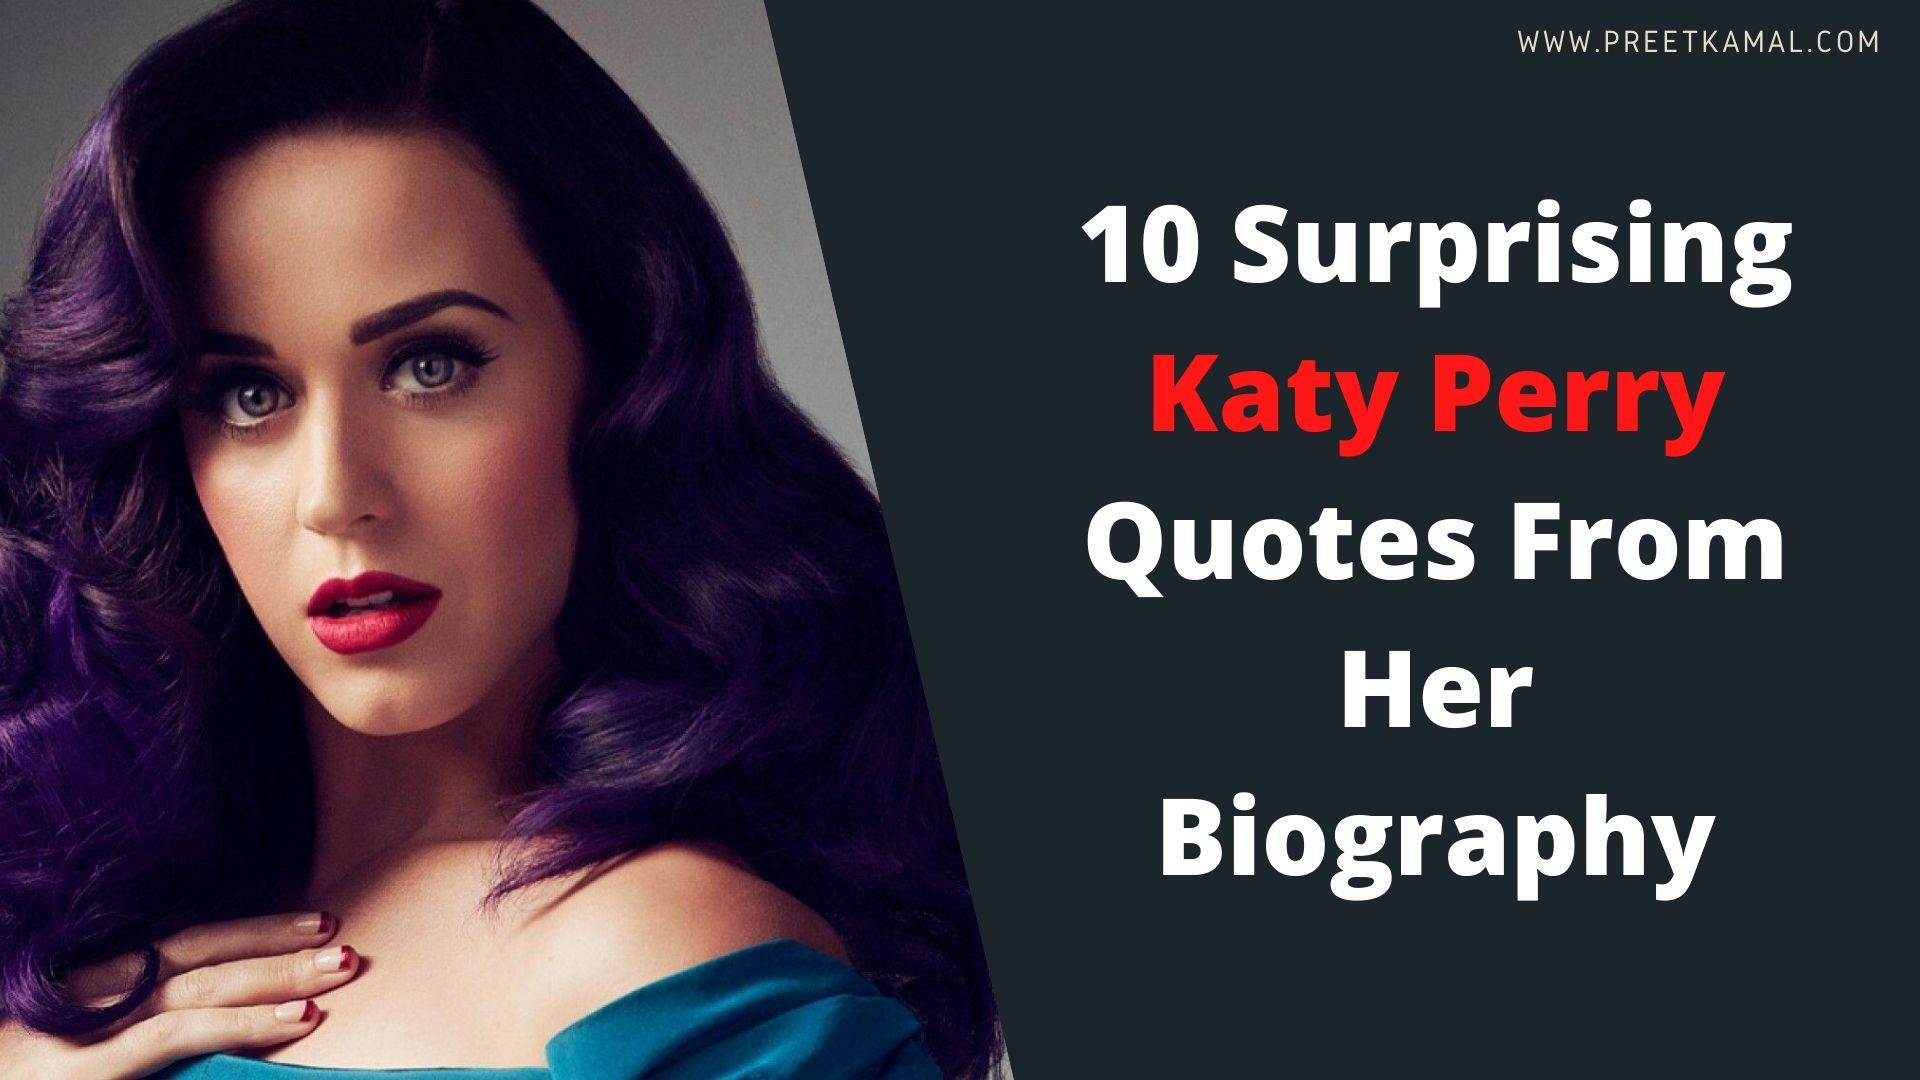 10 Surprising Katy Perry Quotes From Her Biography